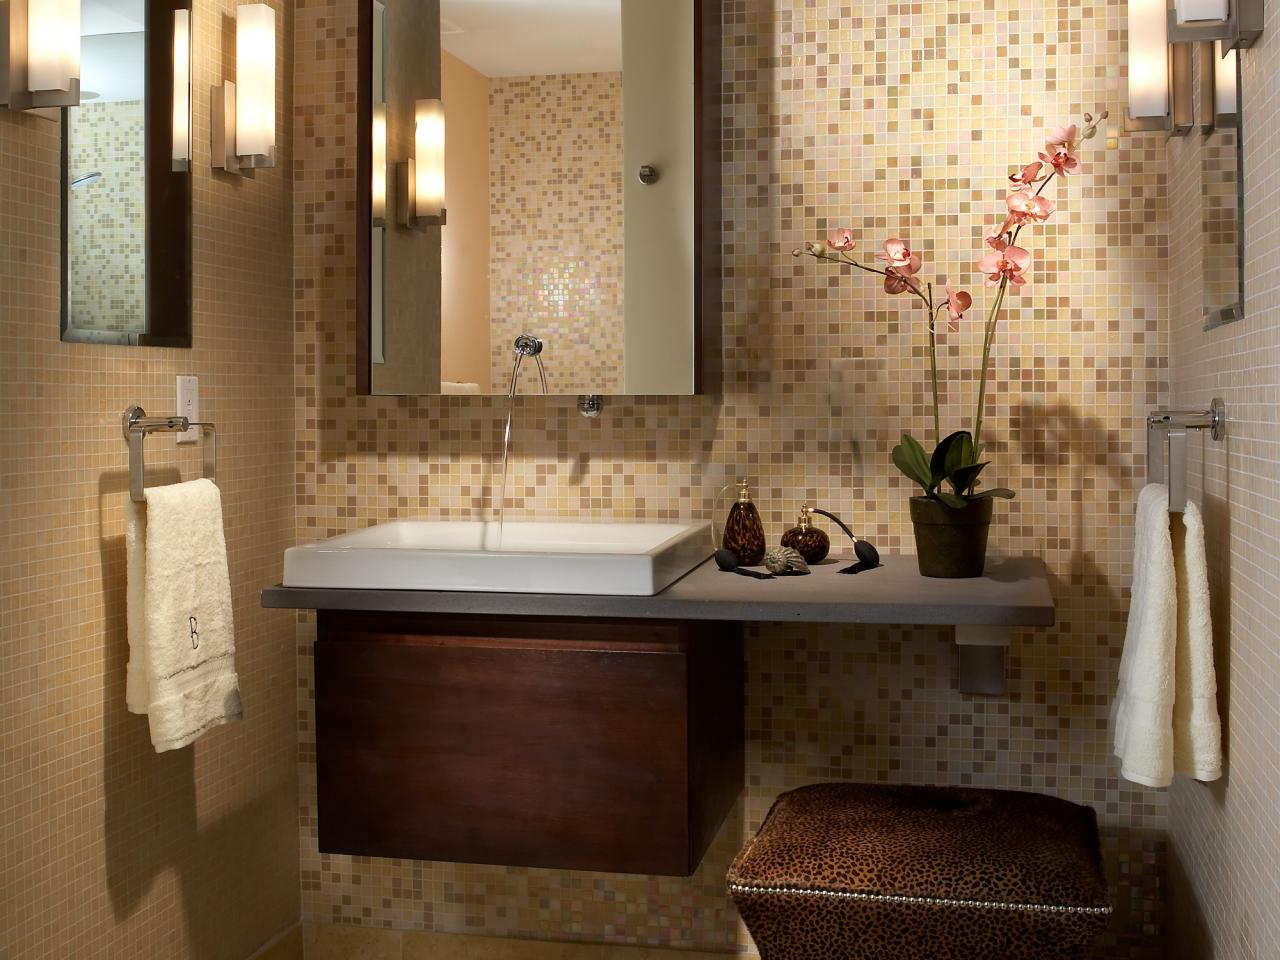 Bathroom backsplash beauties bathroom ideas designs hgtv for Hgtv small bathroom design ideas